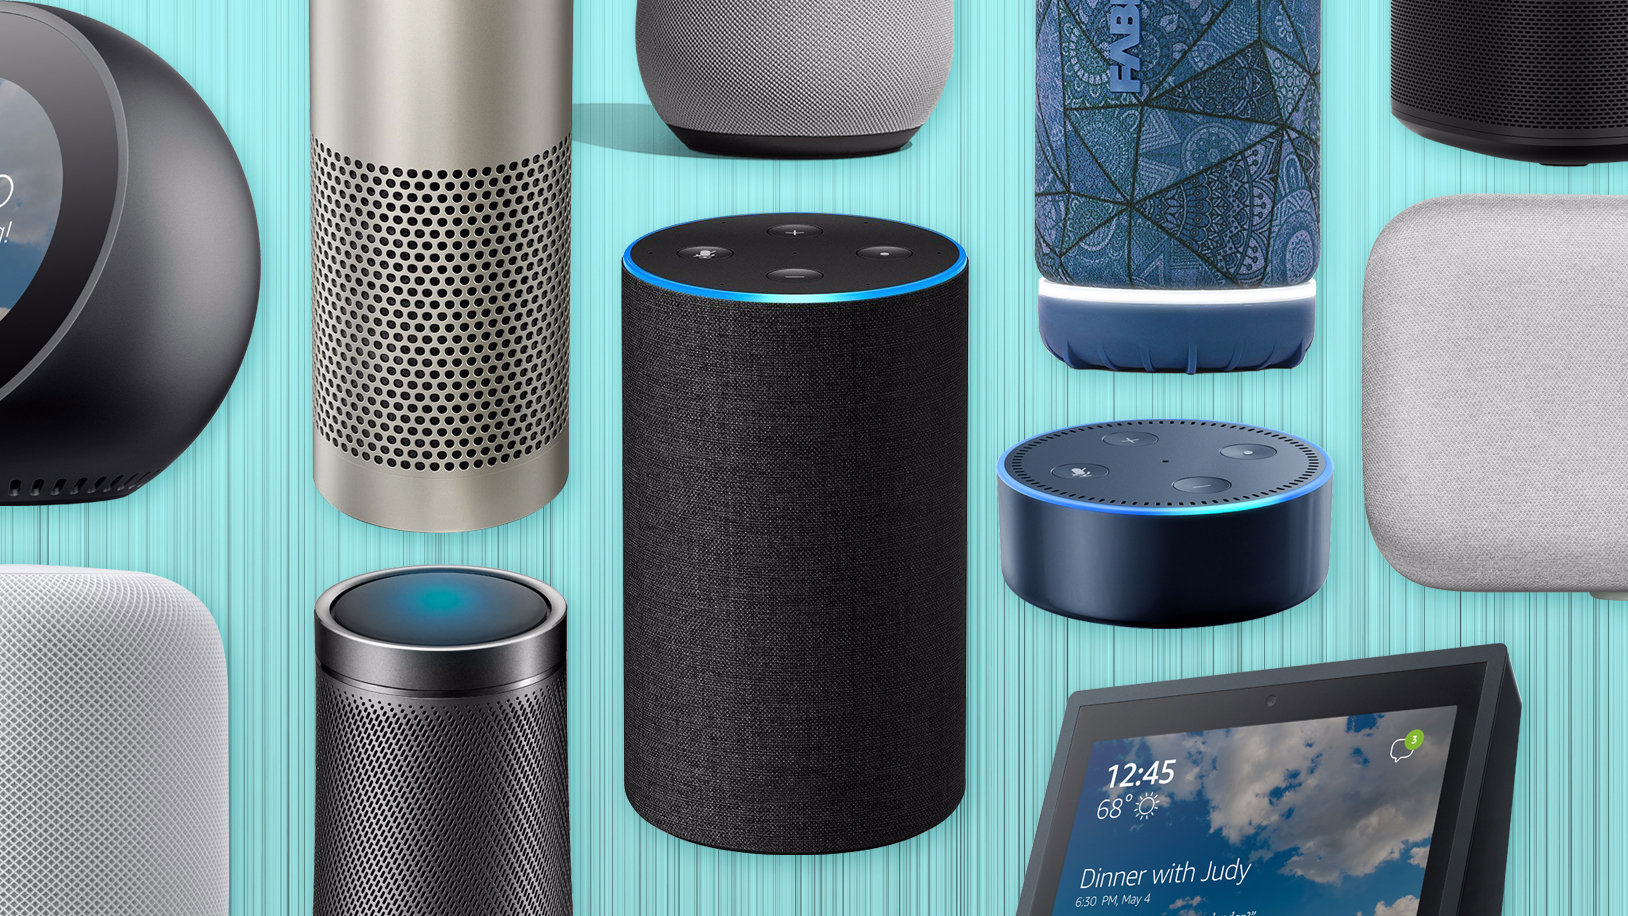 Smart Speaker Market Boasts A Possible 18% CAGR | FierceElectronics